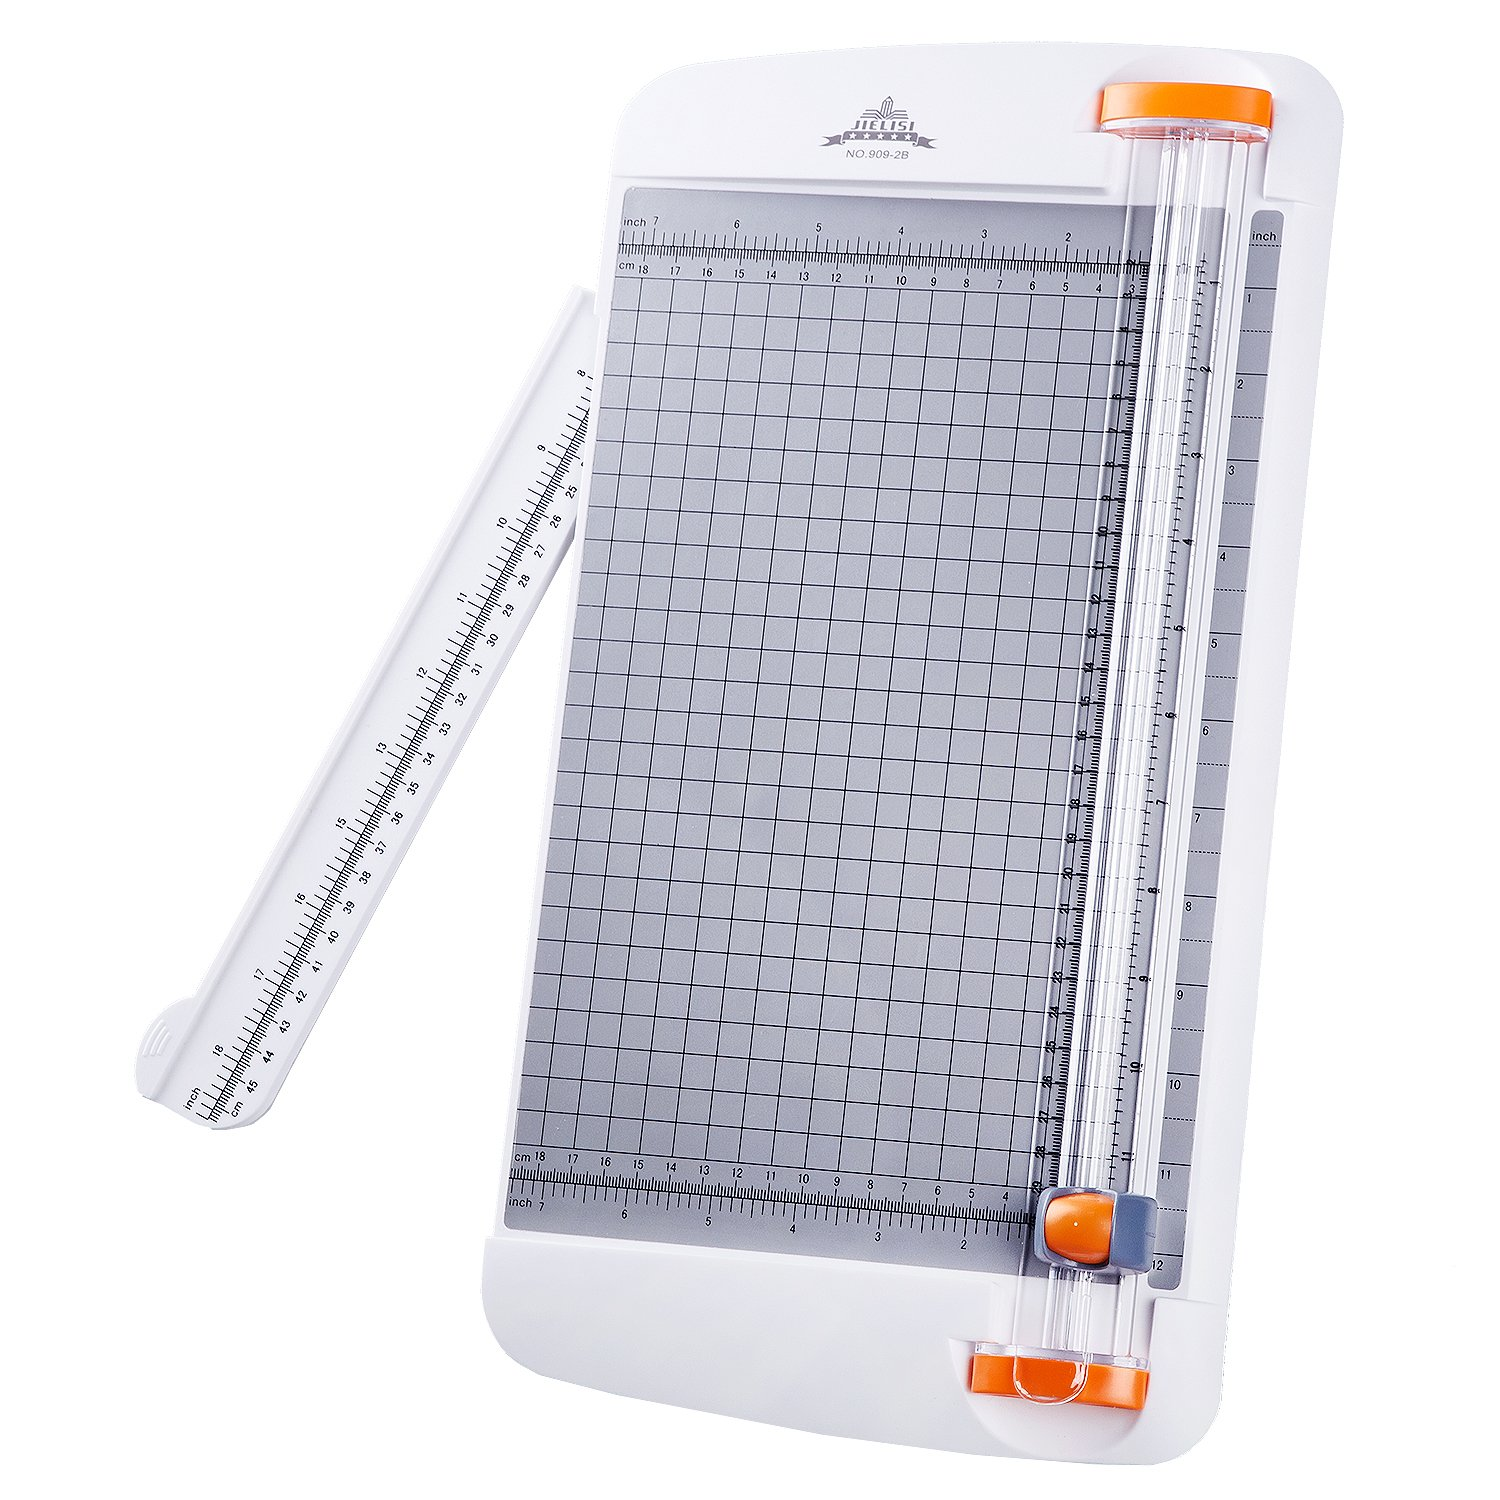 Work4U Titanium 12 Inch Paper Cutter A4 Paper Trimmer with Automatic Security Safeguard Guillotine for Coupon Craft Paper Label and Photo White (909-2B) by Work4U